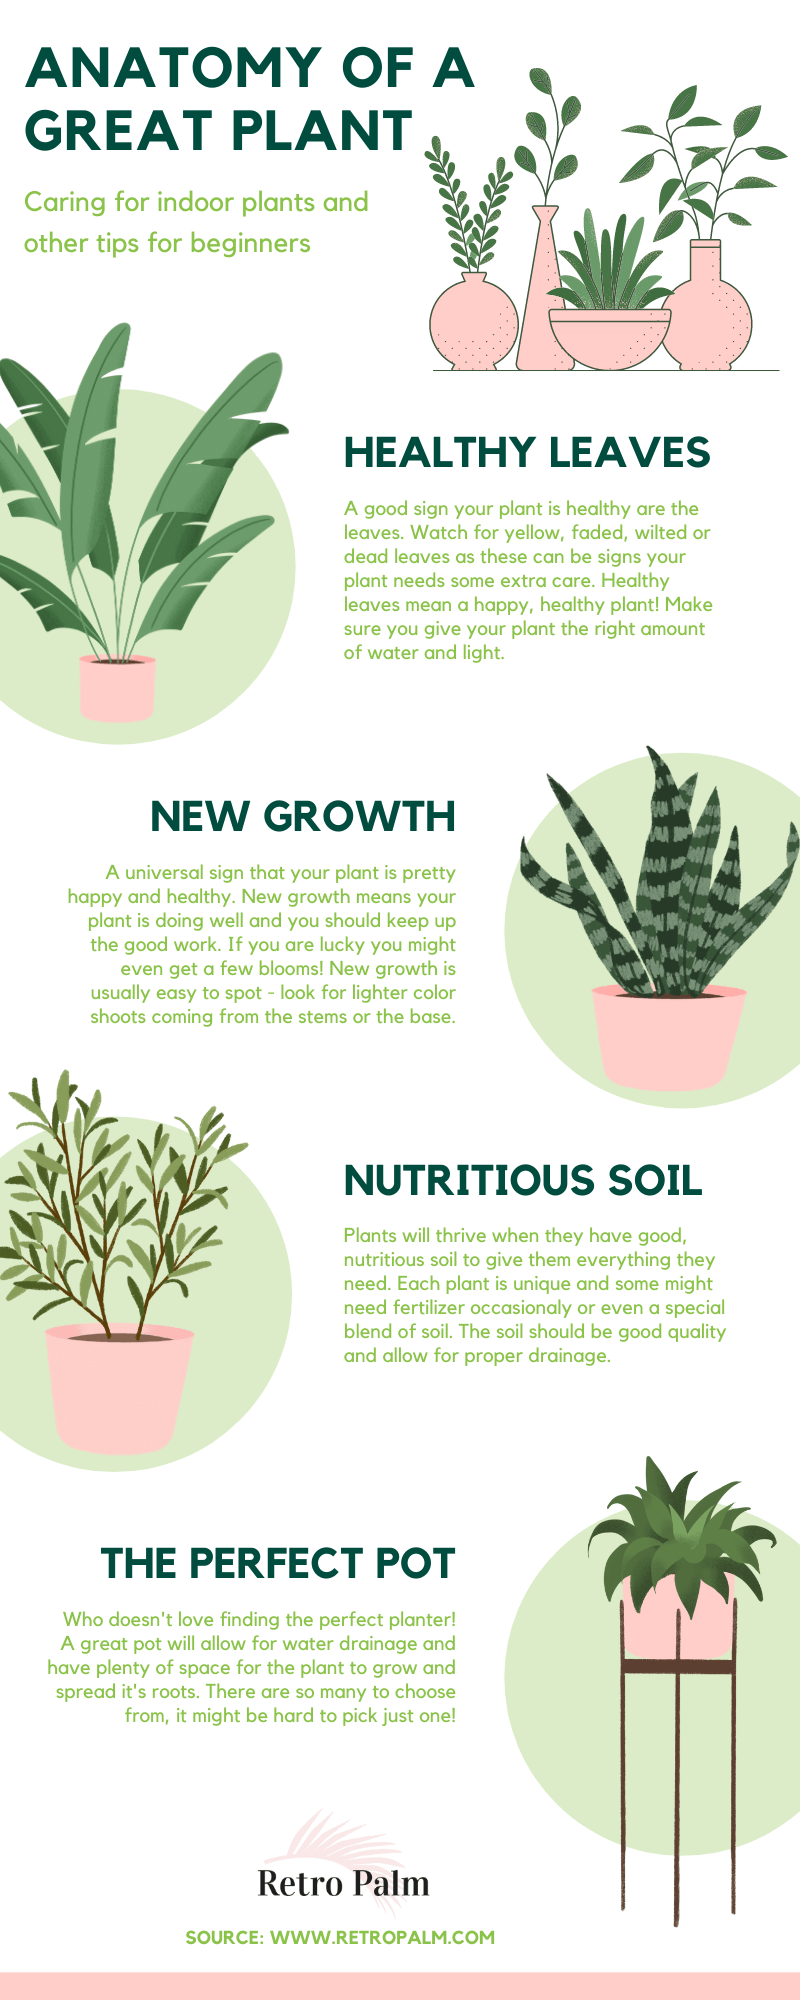 great plants have healthy leaves, new growth, nutritious soil and a good pot.